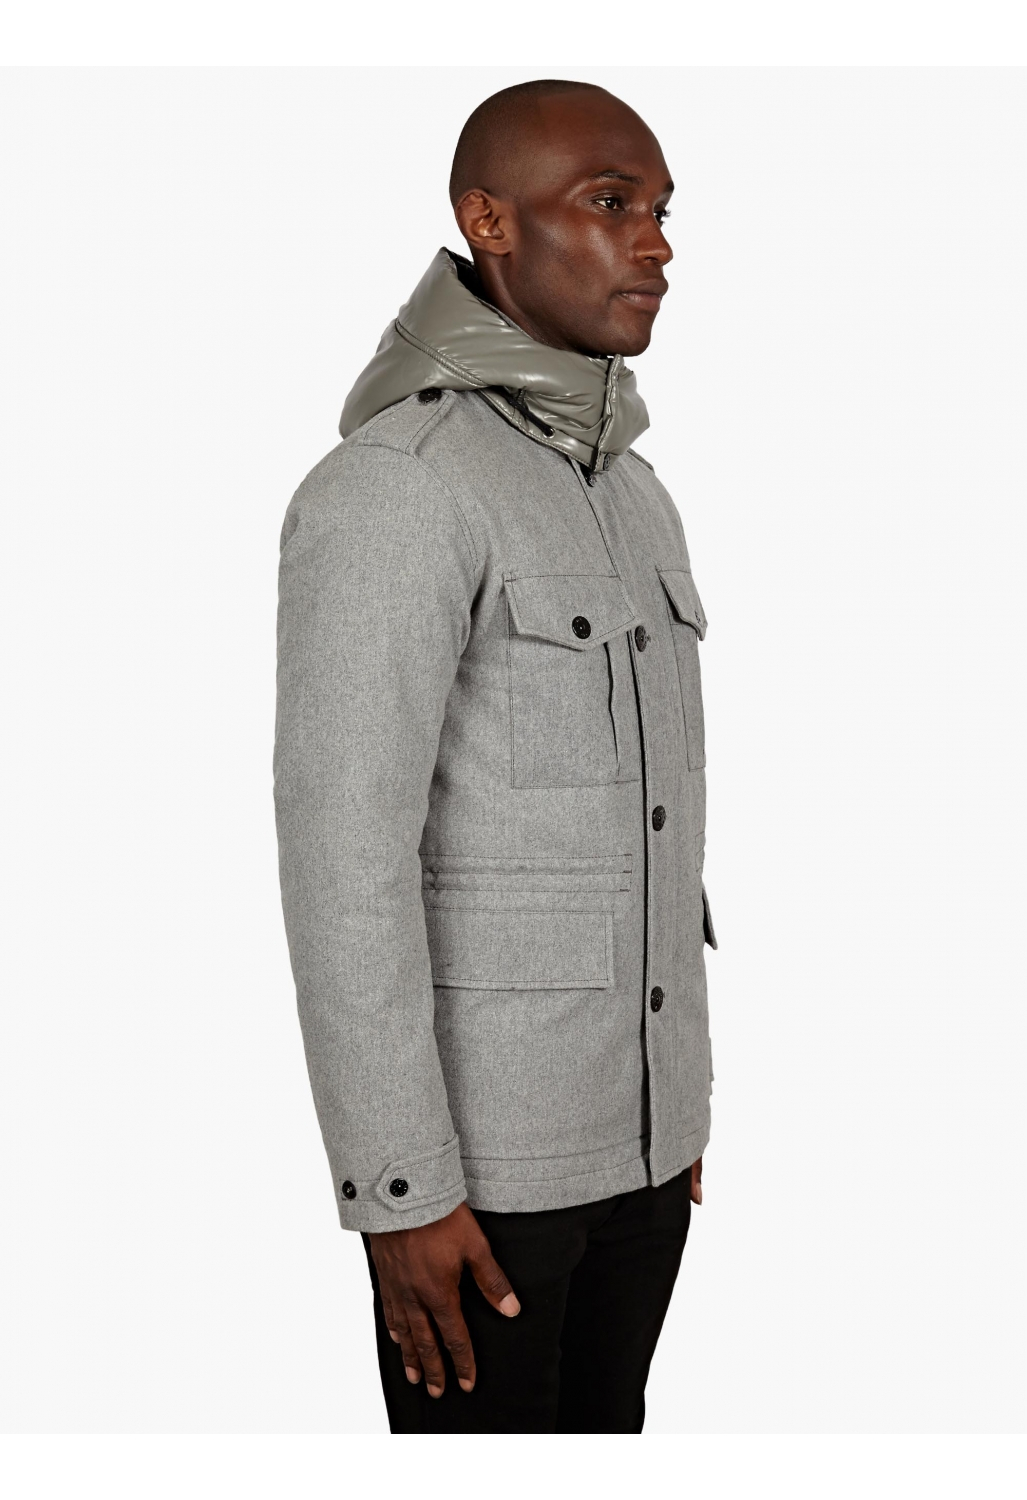 Stone Island Men S Grey Wool Ice Jacket In Gray For Men Lyst